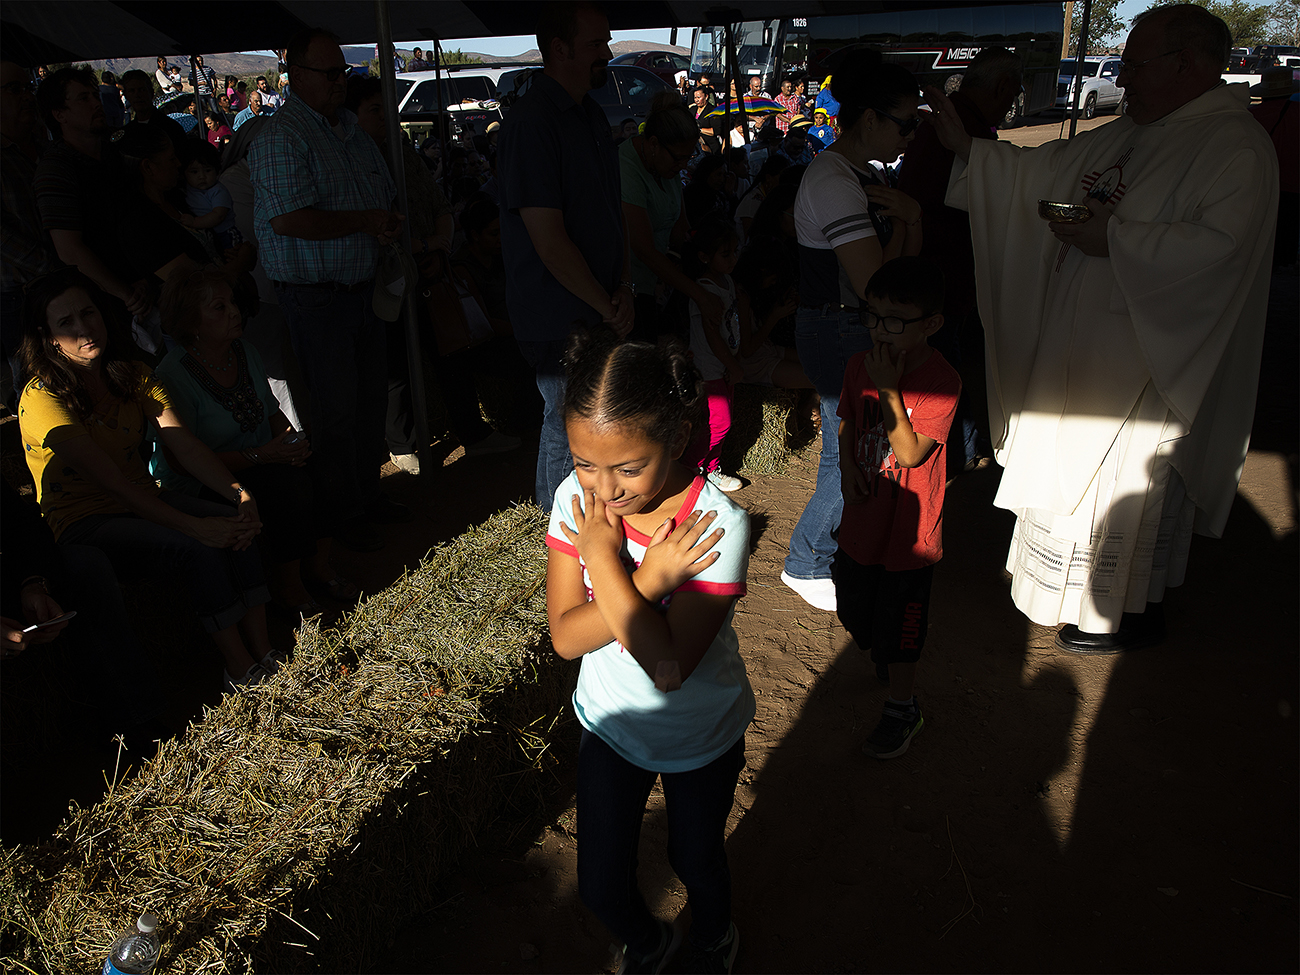 A girl crosses her arms after receiving a blessing during Communion at an outdoor Mass Sept. 26, 2019, in Hatch, N.M., which was part of a pastoral encounter by U.S. bishops with migrants at the border. The Sept. 23-27 pastoral visit, sponsored by various offices of the U.S. Conference of Catholic Bishops and other national organizations, aimed to highlight the church's ministry to migrants, the border conditions and immigration laws affecting them, and their material and spiritual needs. (CNS photo/Tyler Orsburn)